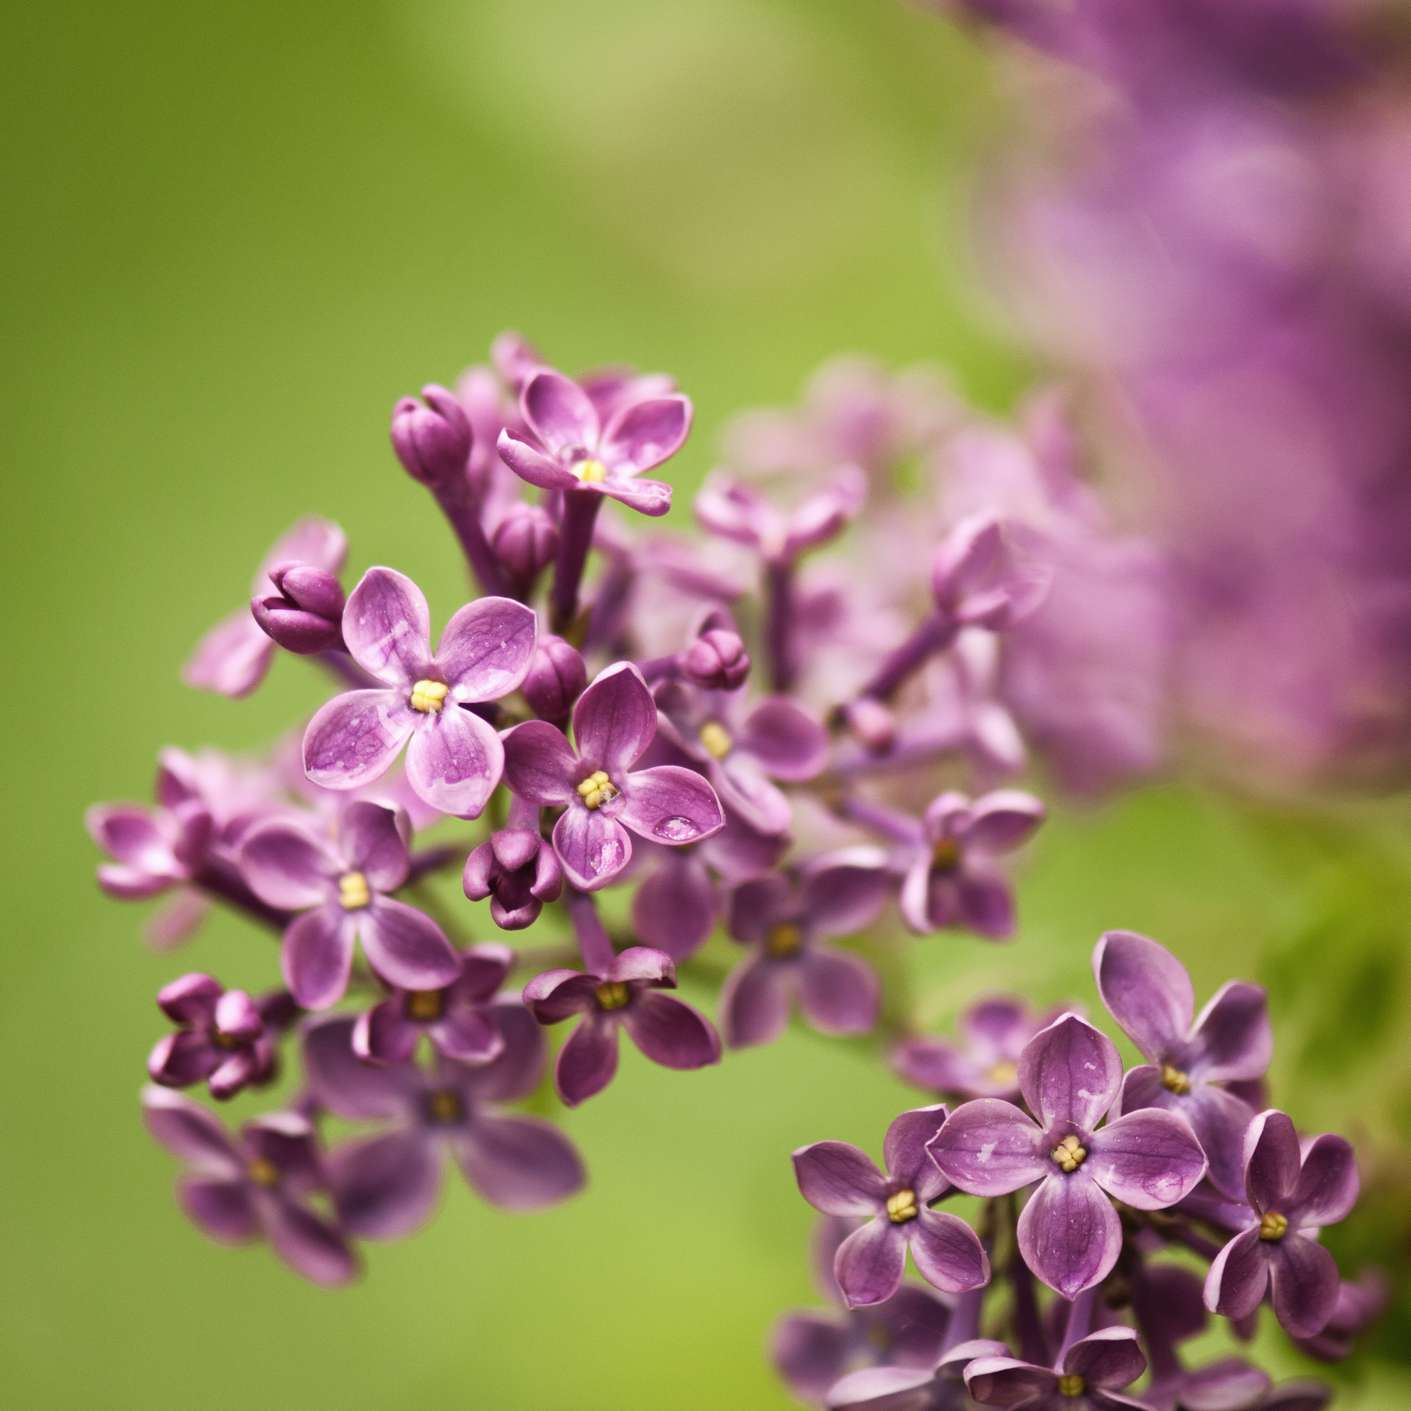 The Declaration lilac with purple blooms